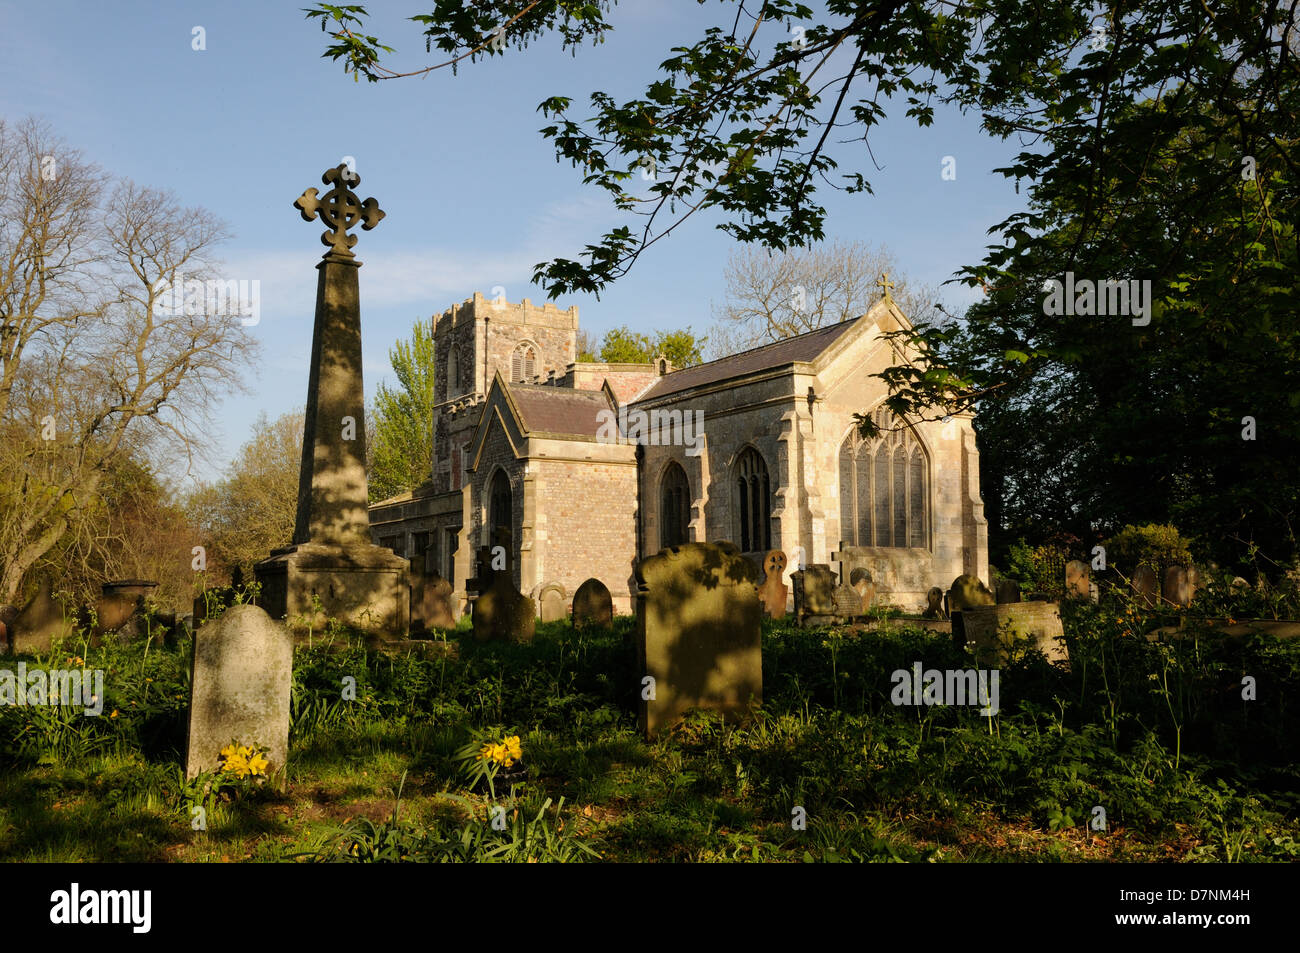 All Saints' Church, Roos, East Yorkshire, England Stock Photo